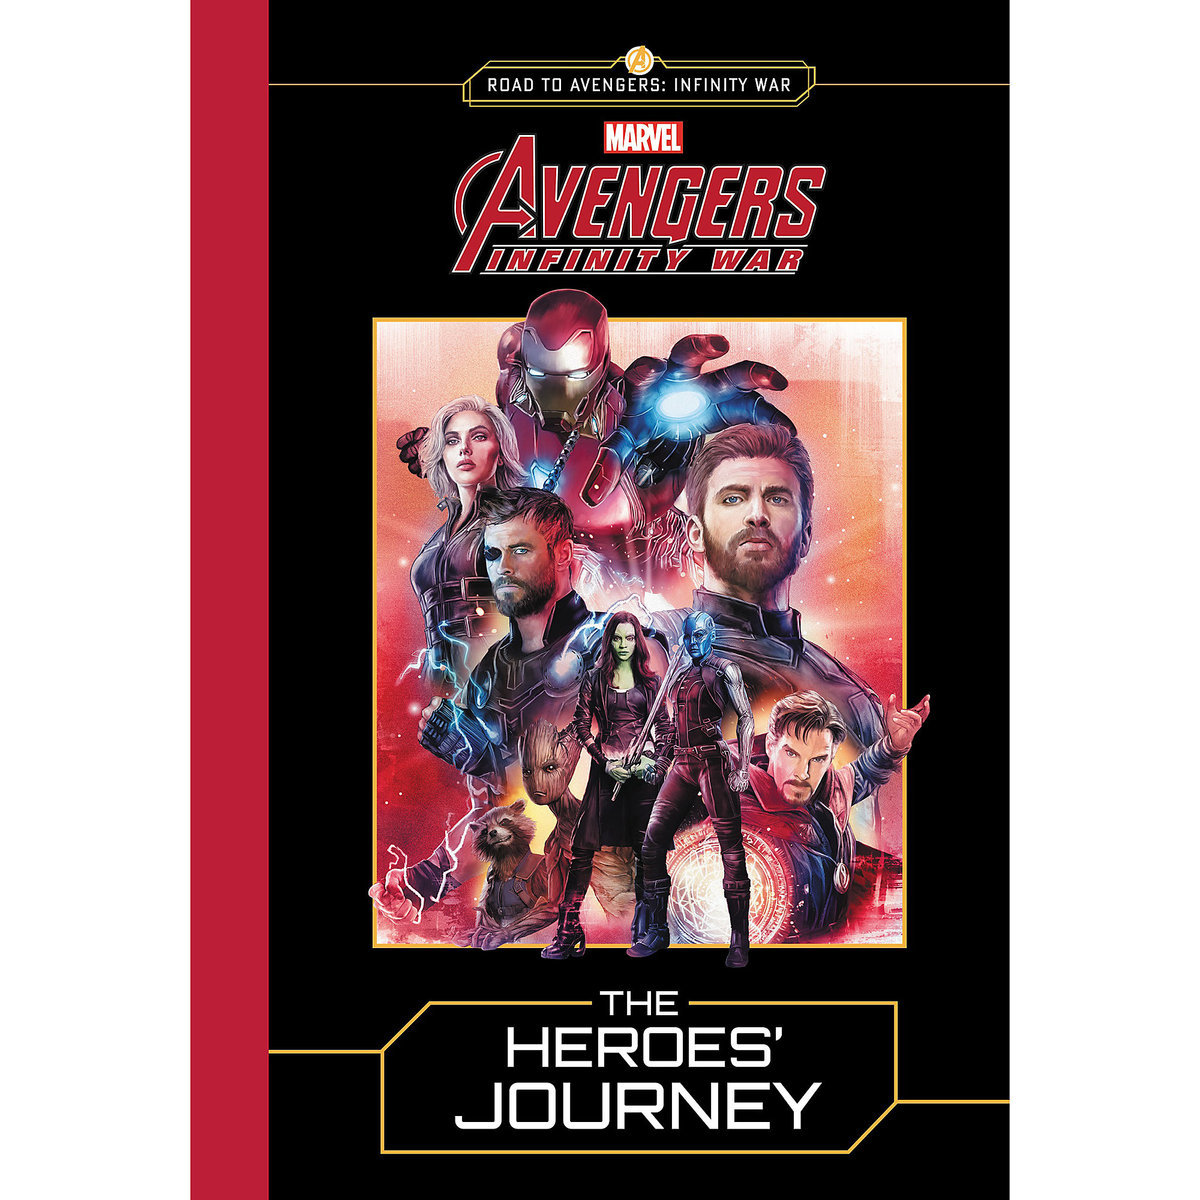 marvels avengers infinity war the heroes journey book - Avengers Marvel